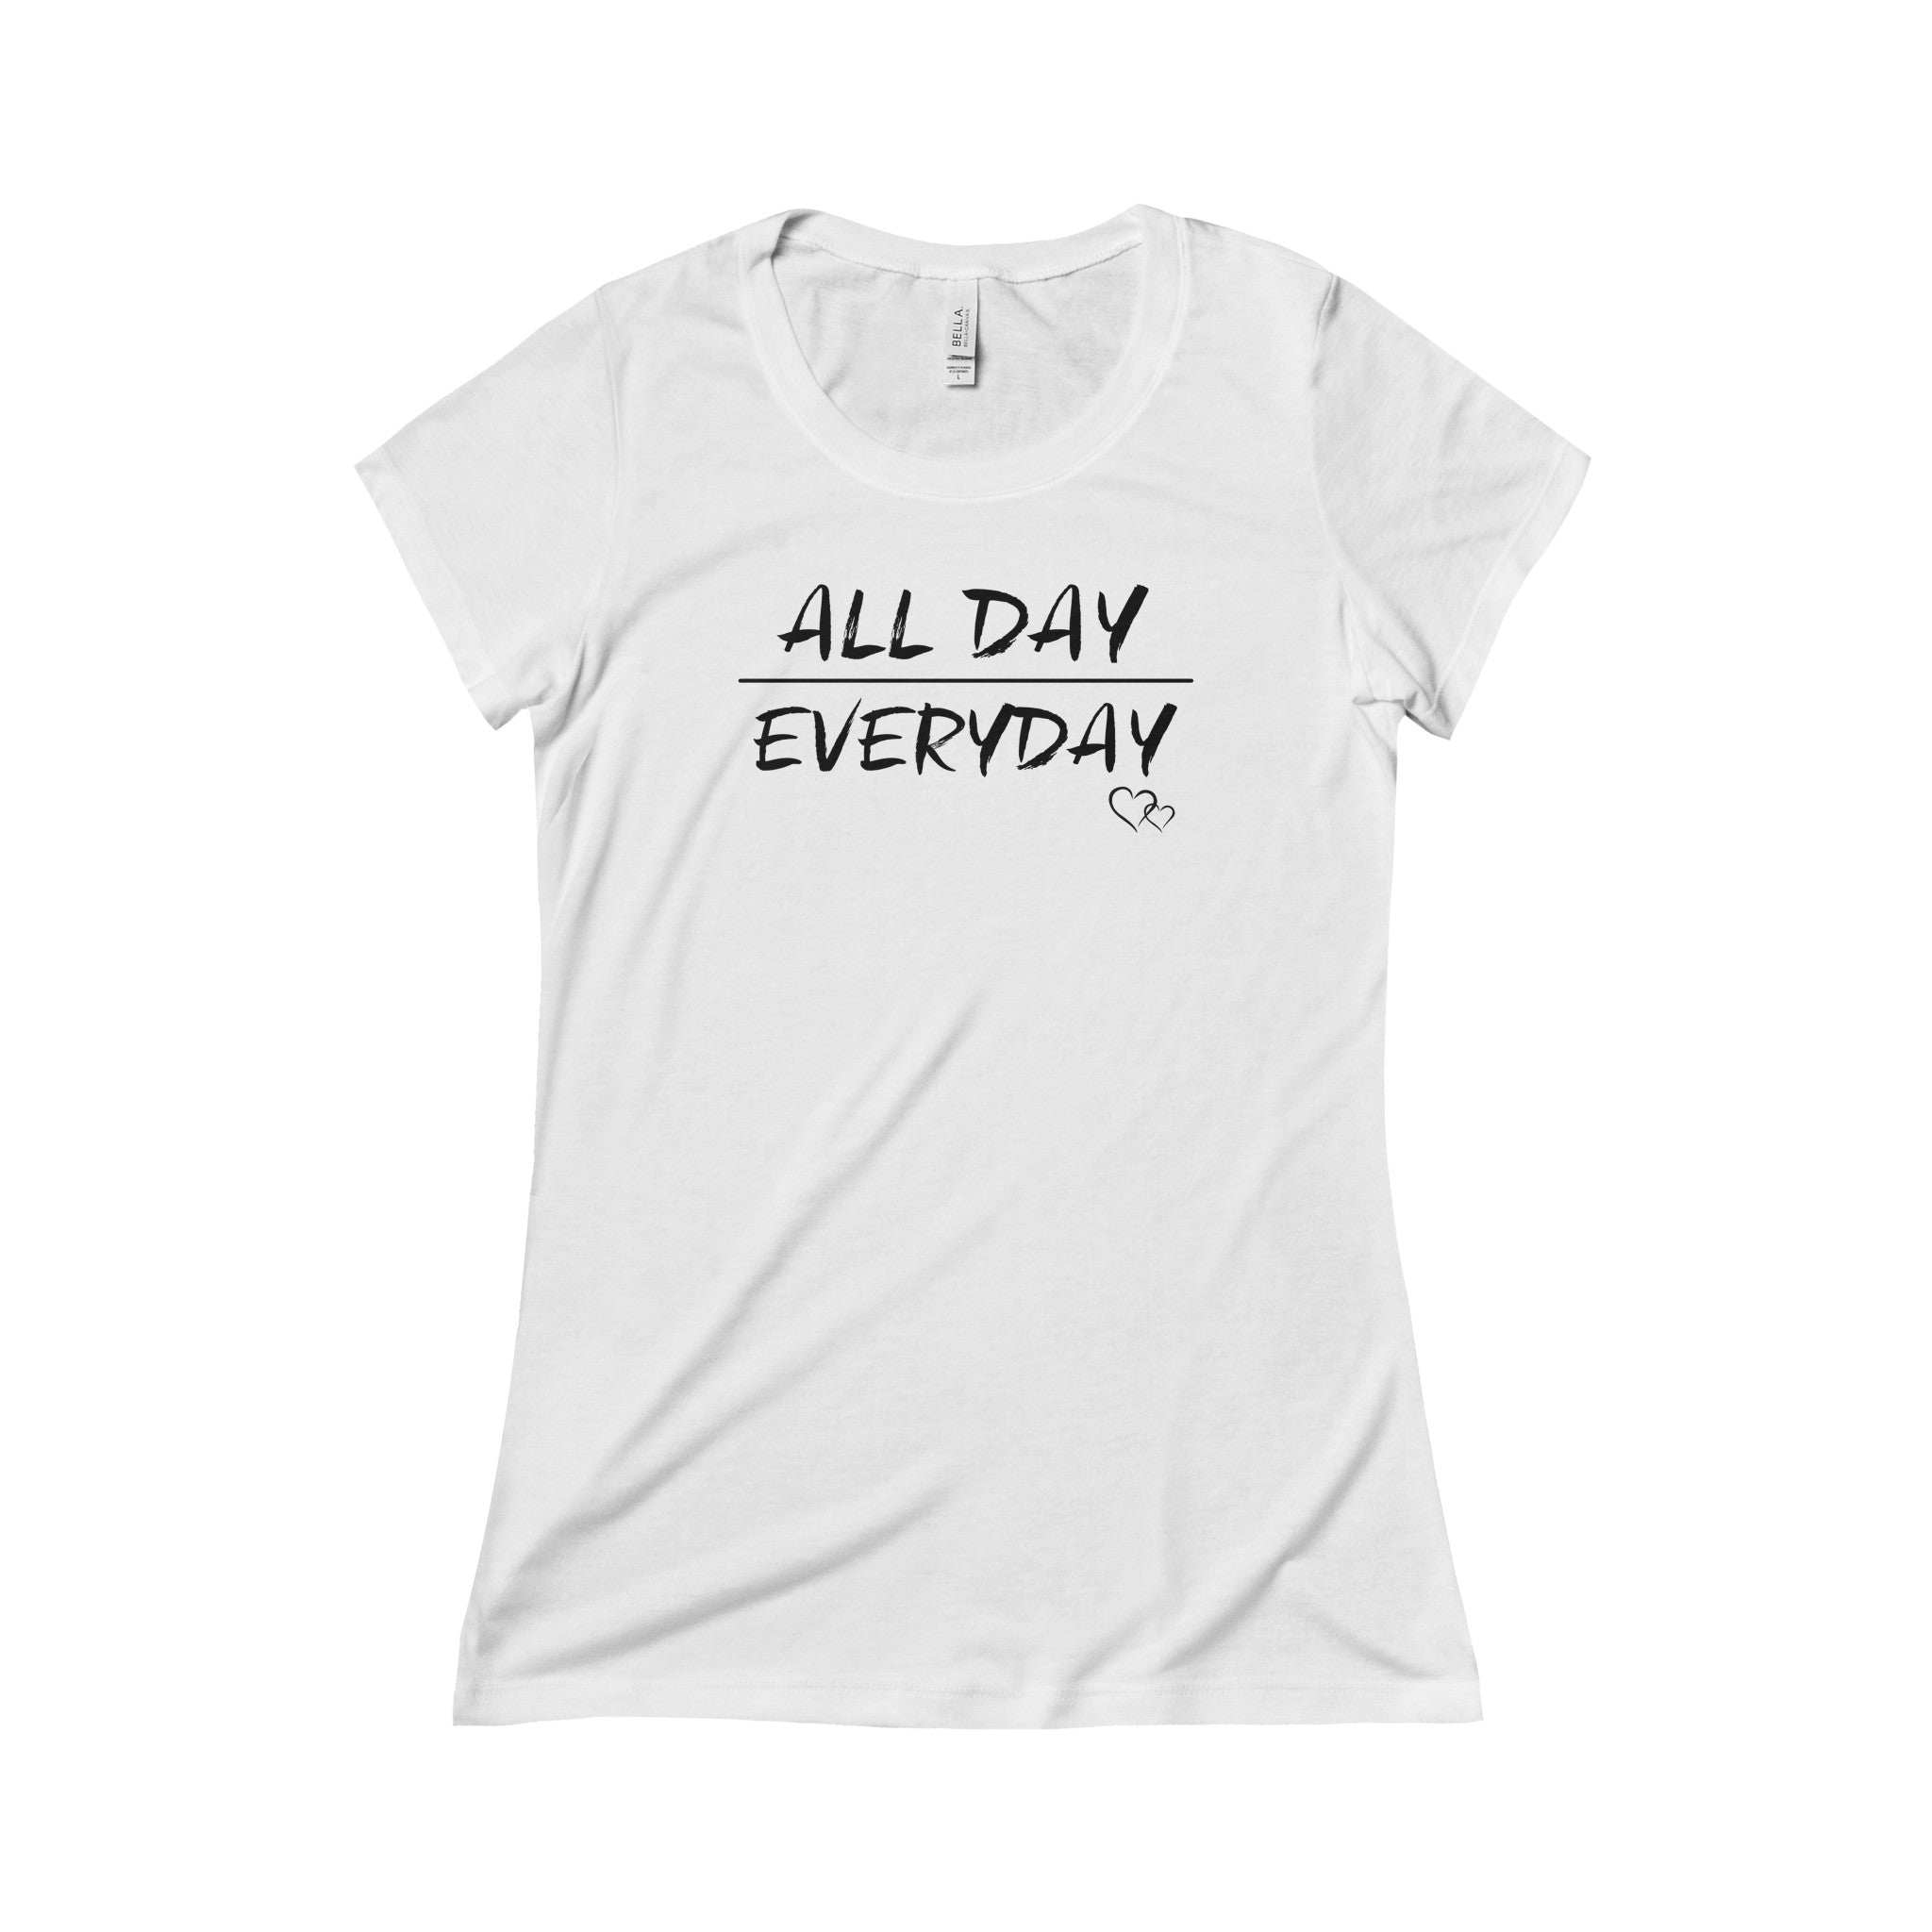 ALL DAY EVERYDAY - Triblend Short Sleeve